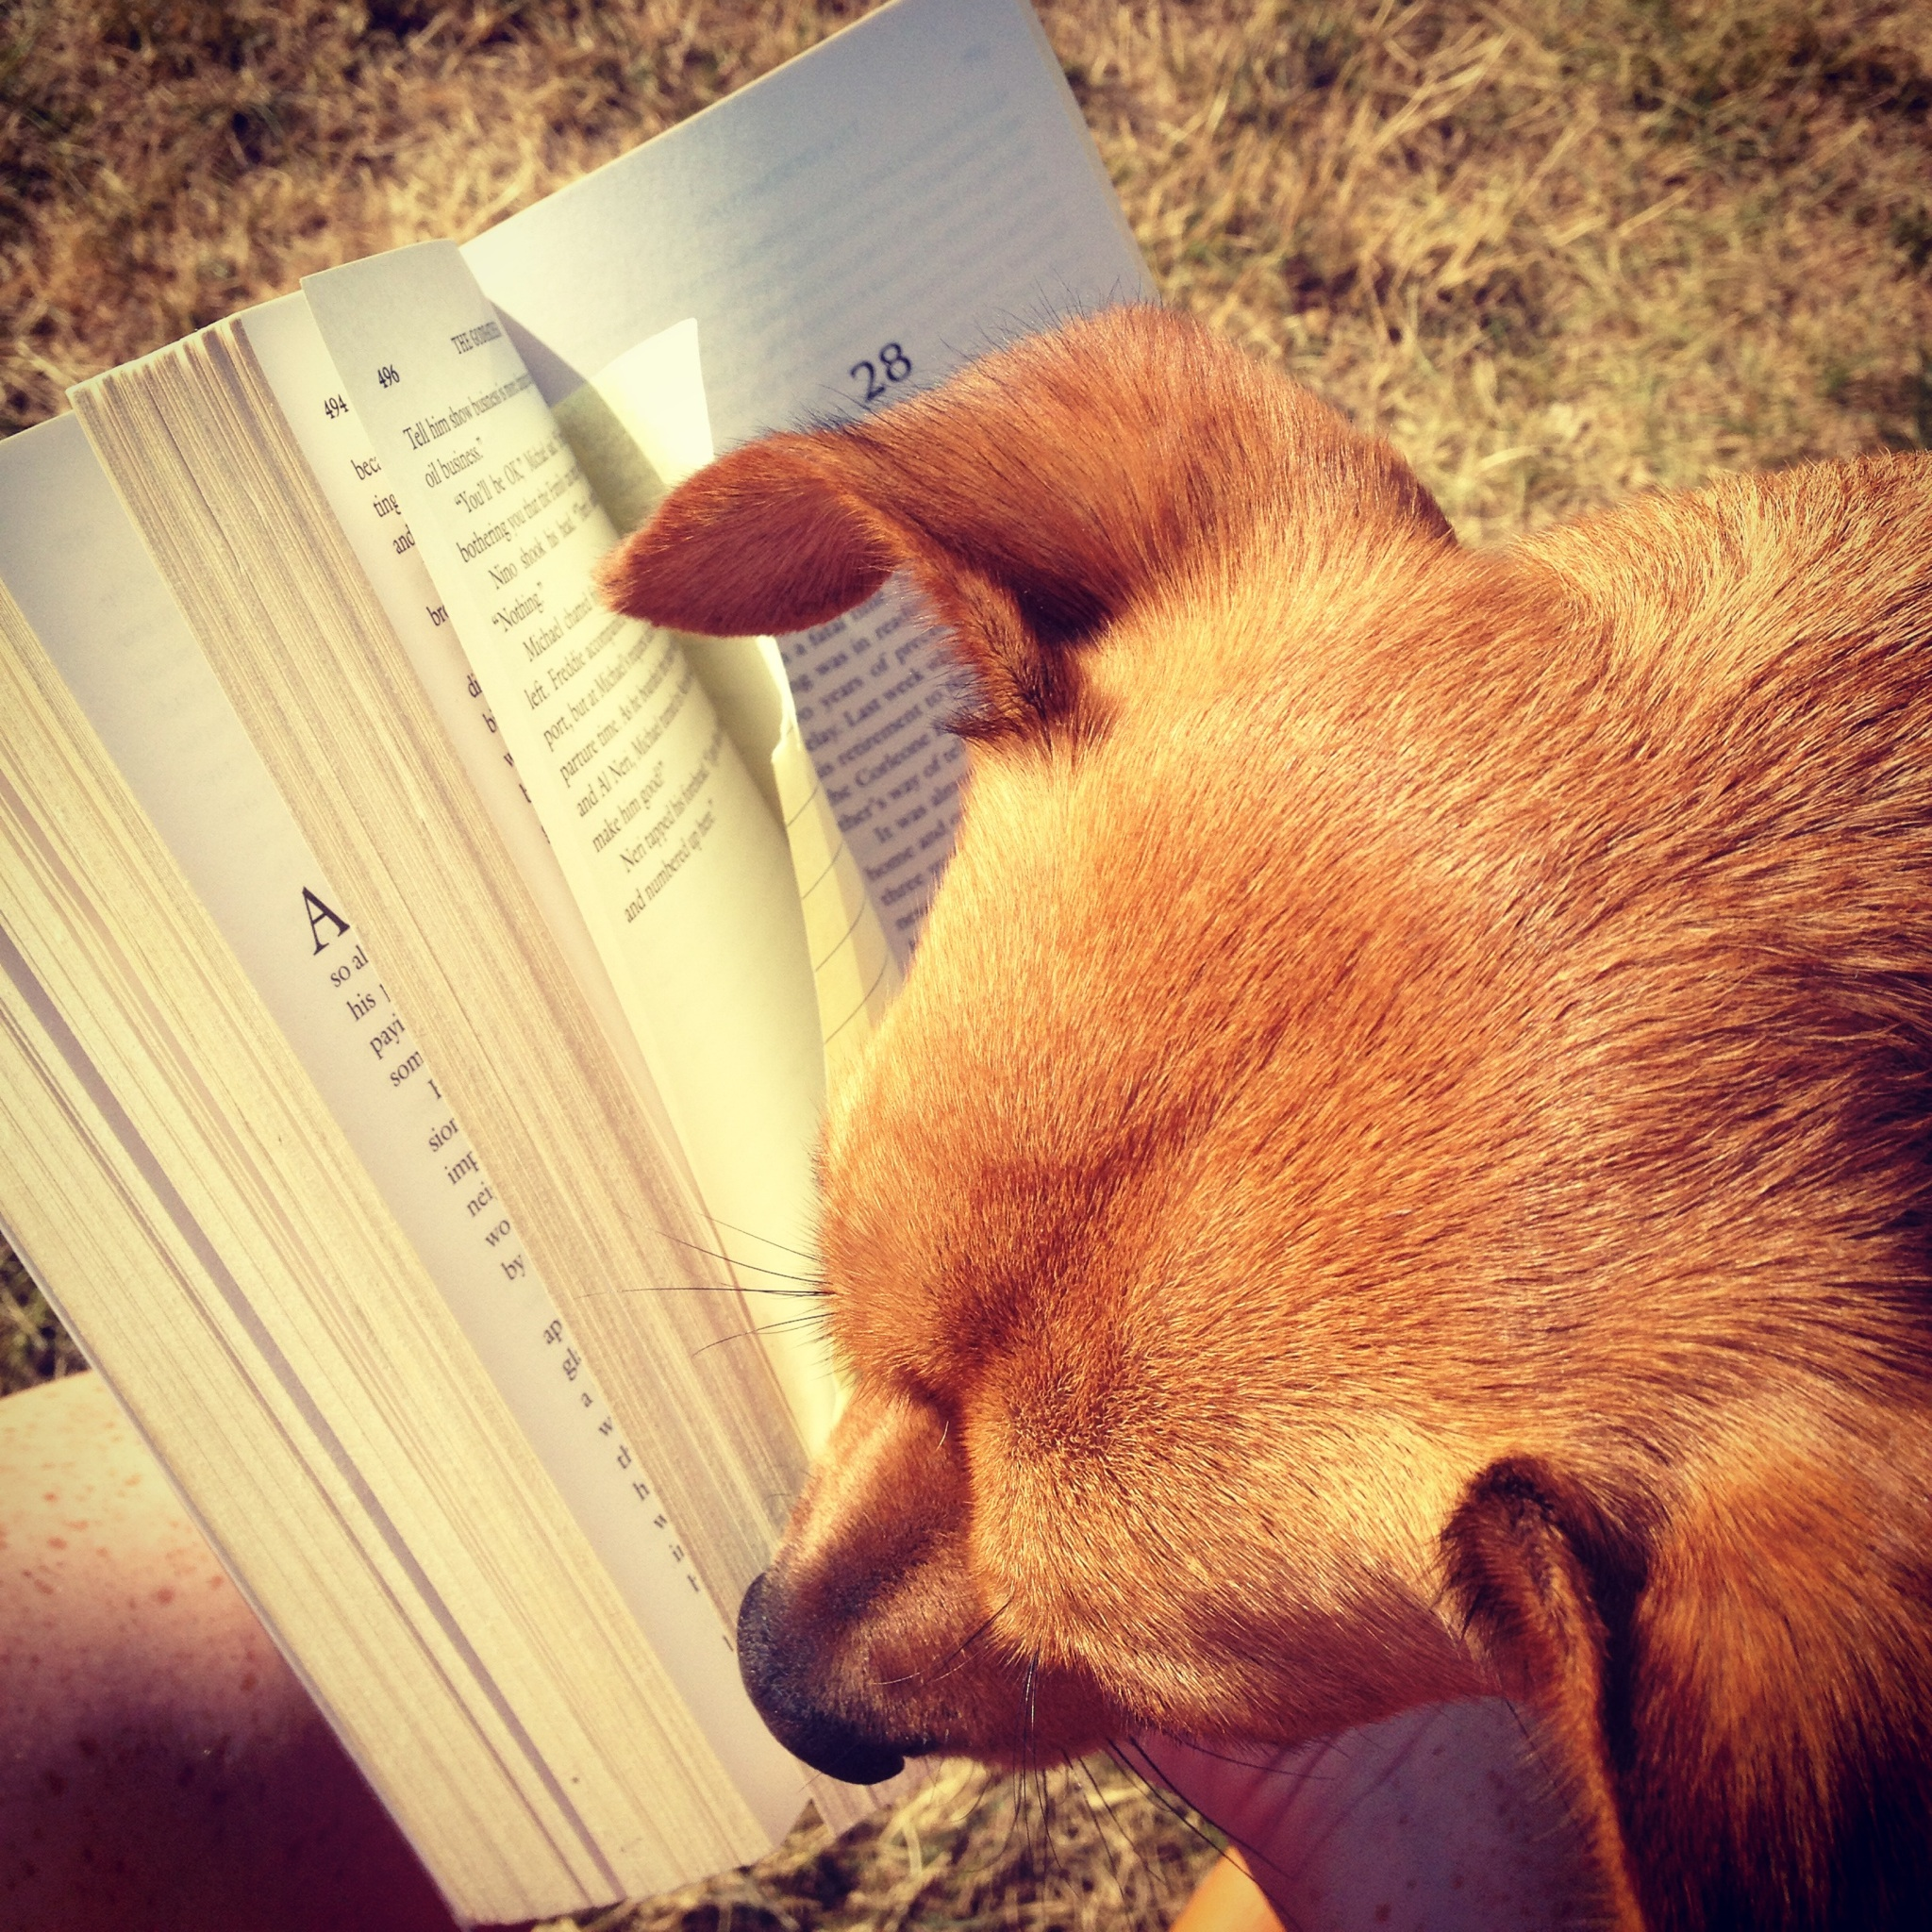 Dog Ate My Book